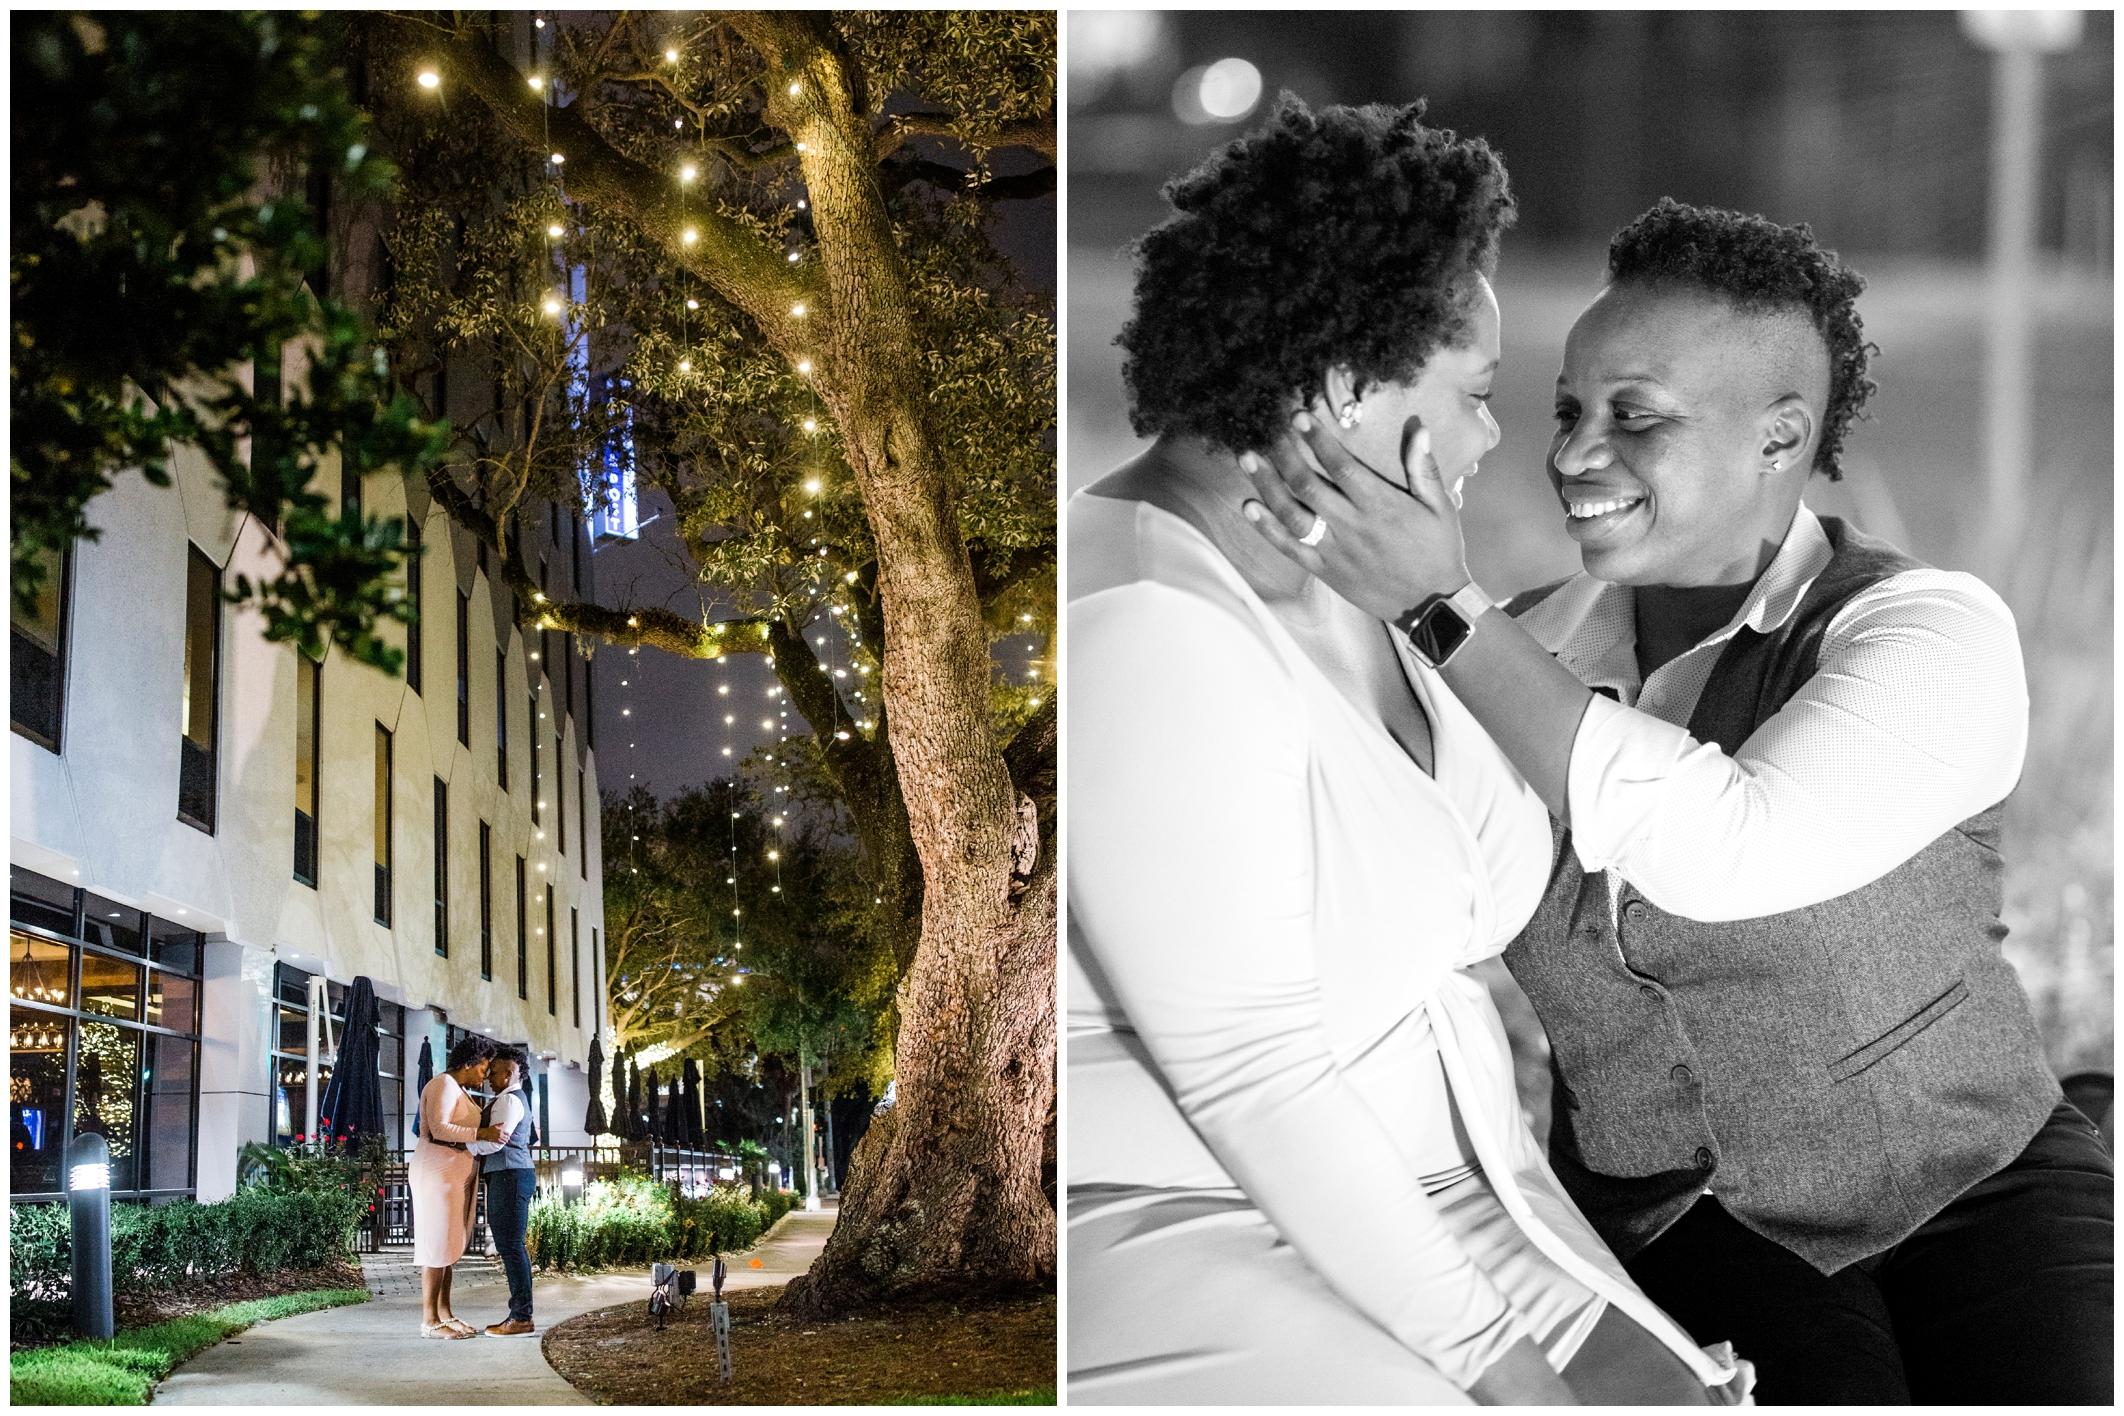 Surprise double proposal at river and post, jacksonville, florida - Lisa Silva Photography_0194.jpg